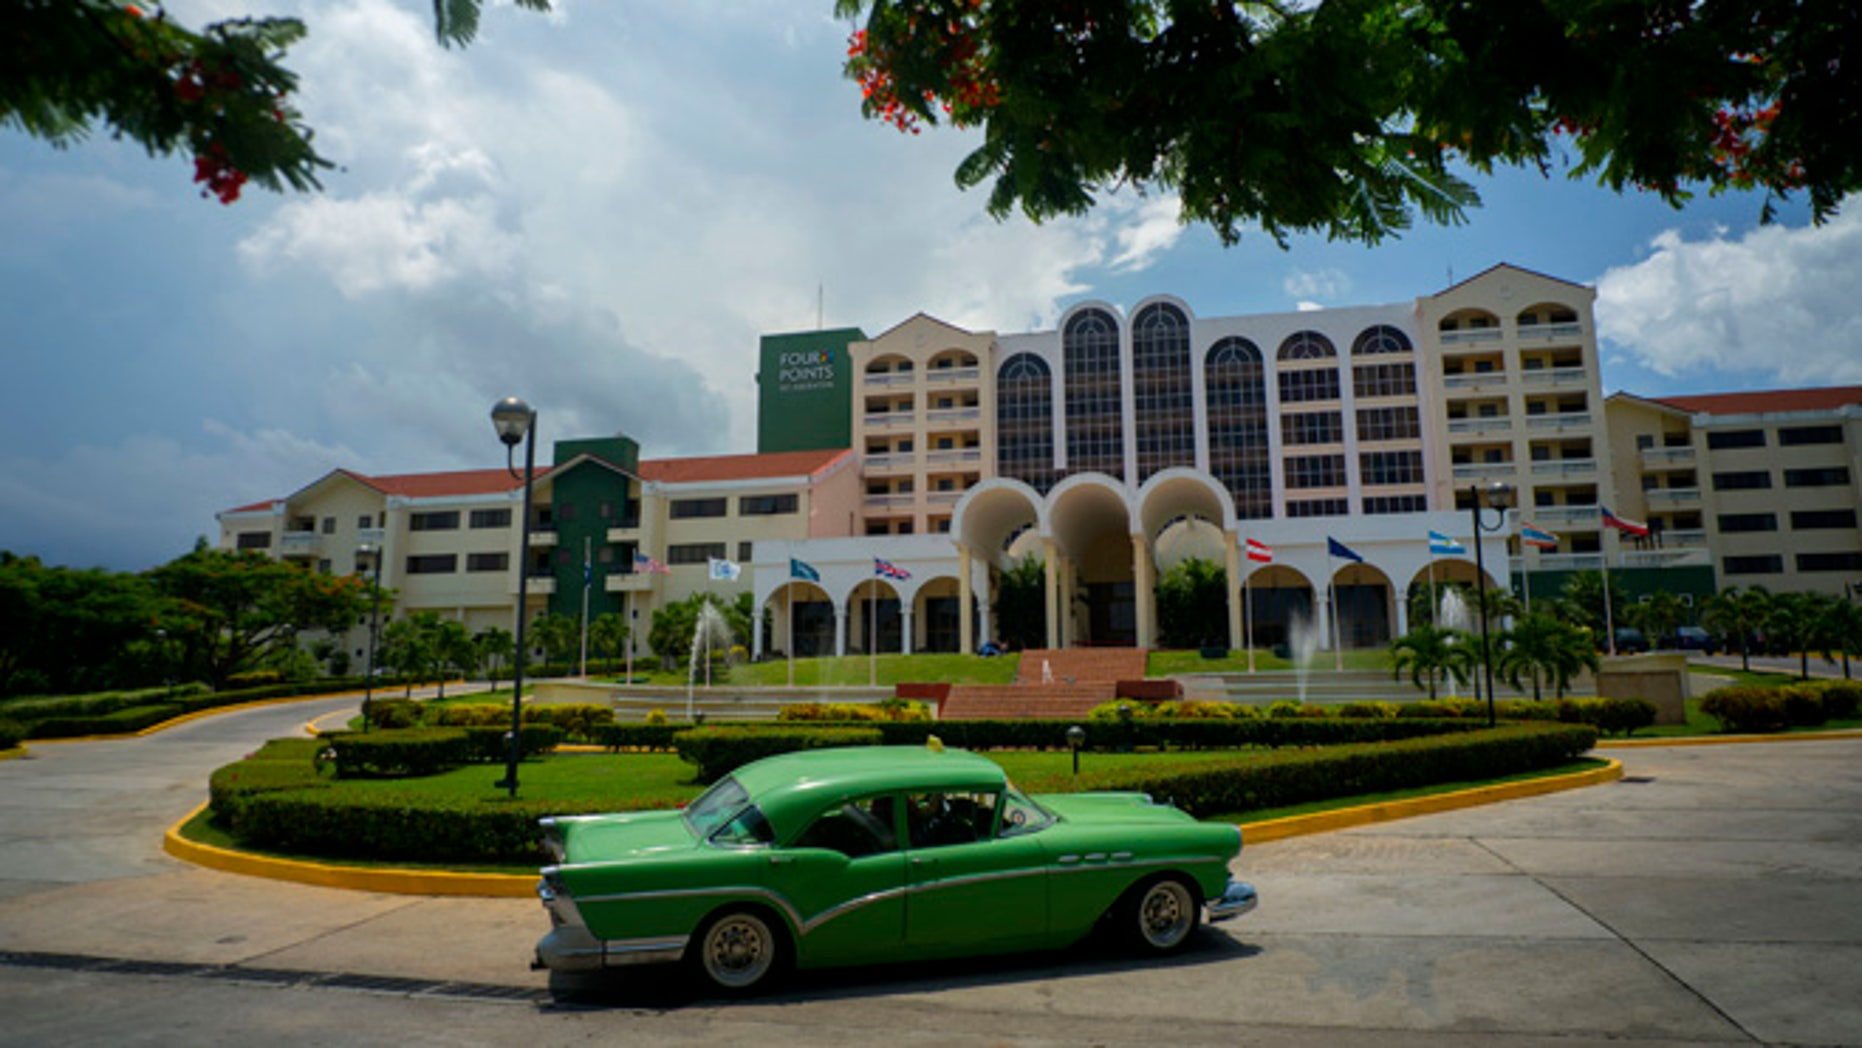 A vintage car passes in front of the Four Points by Sheraton hotel in Havana, Tuesday, June 28, 2016.